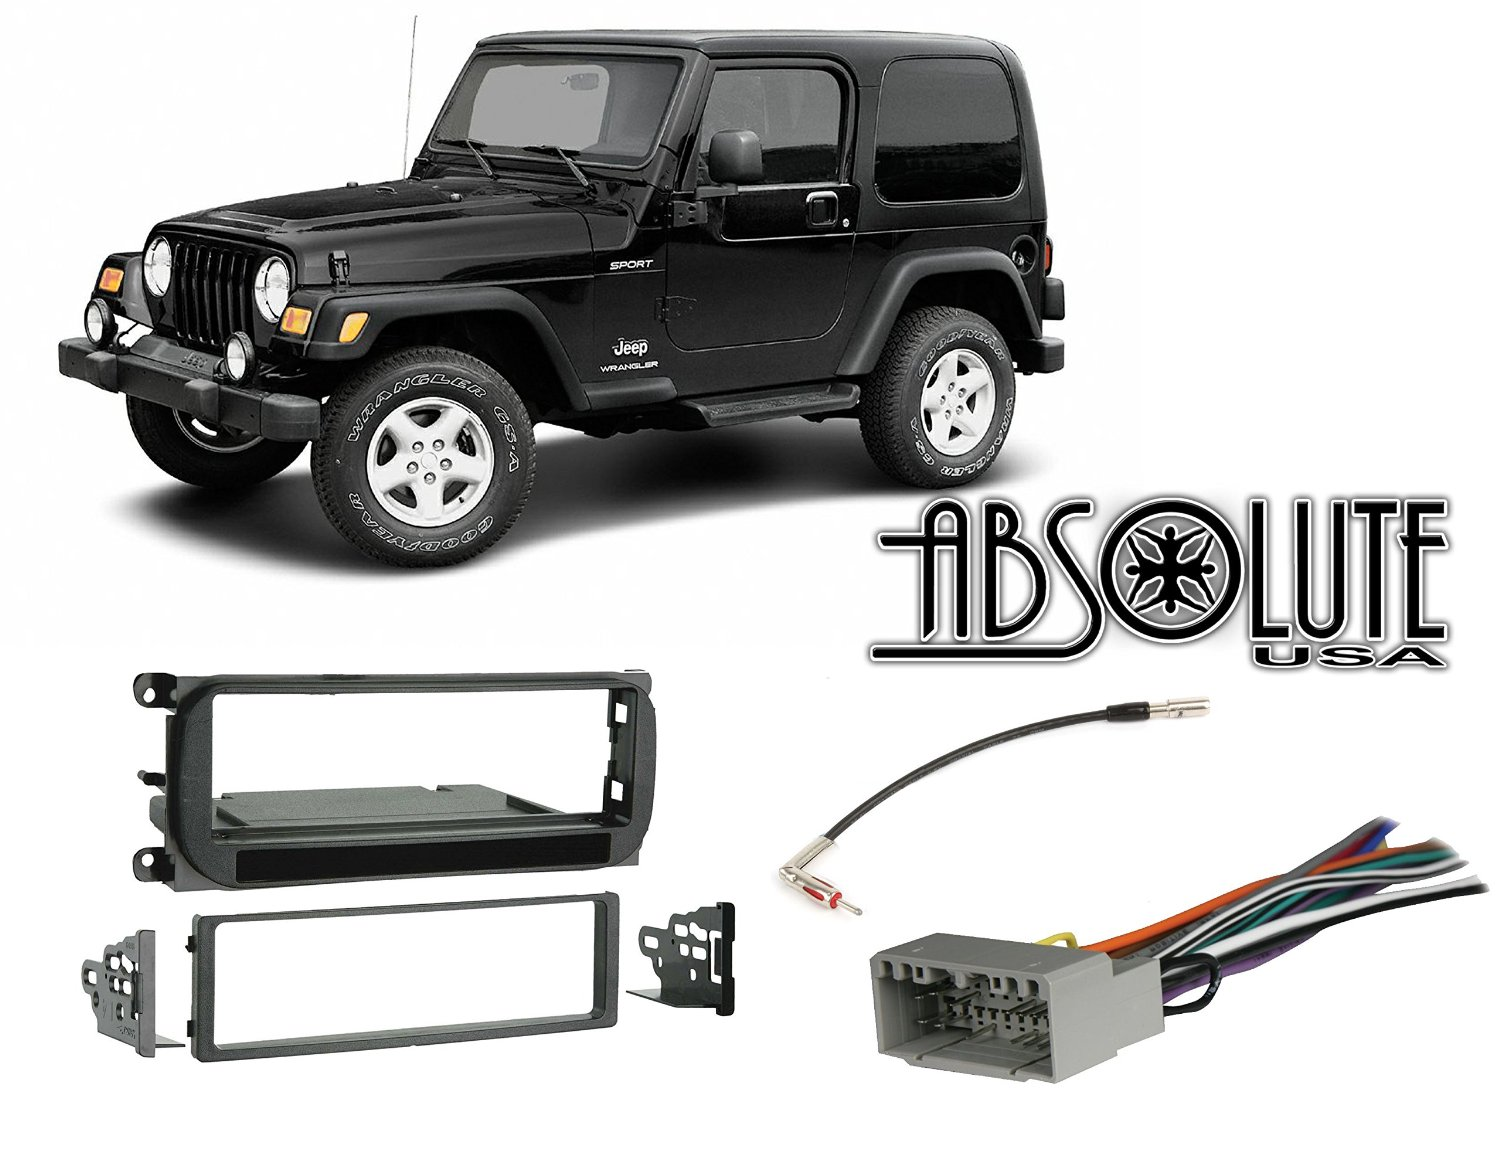 Cheap Install Cb Radio Find Deals On Line At Boston Acoustics Jeep Patriot Wiring Diagram Get Quotations Absolute Radiokitpkg16 Fits Wrangler 2003 2006 Single Din Stereo Harness Dash Kit